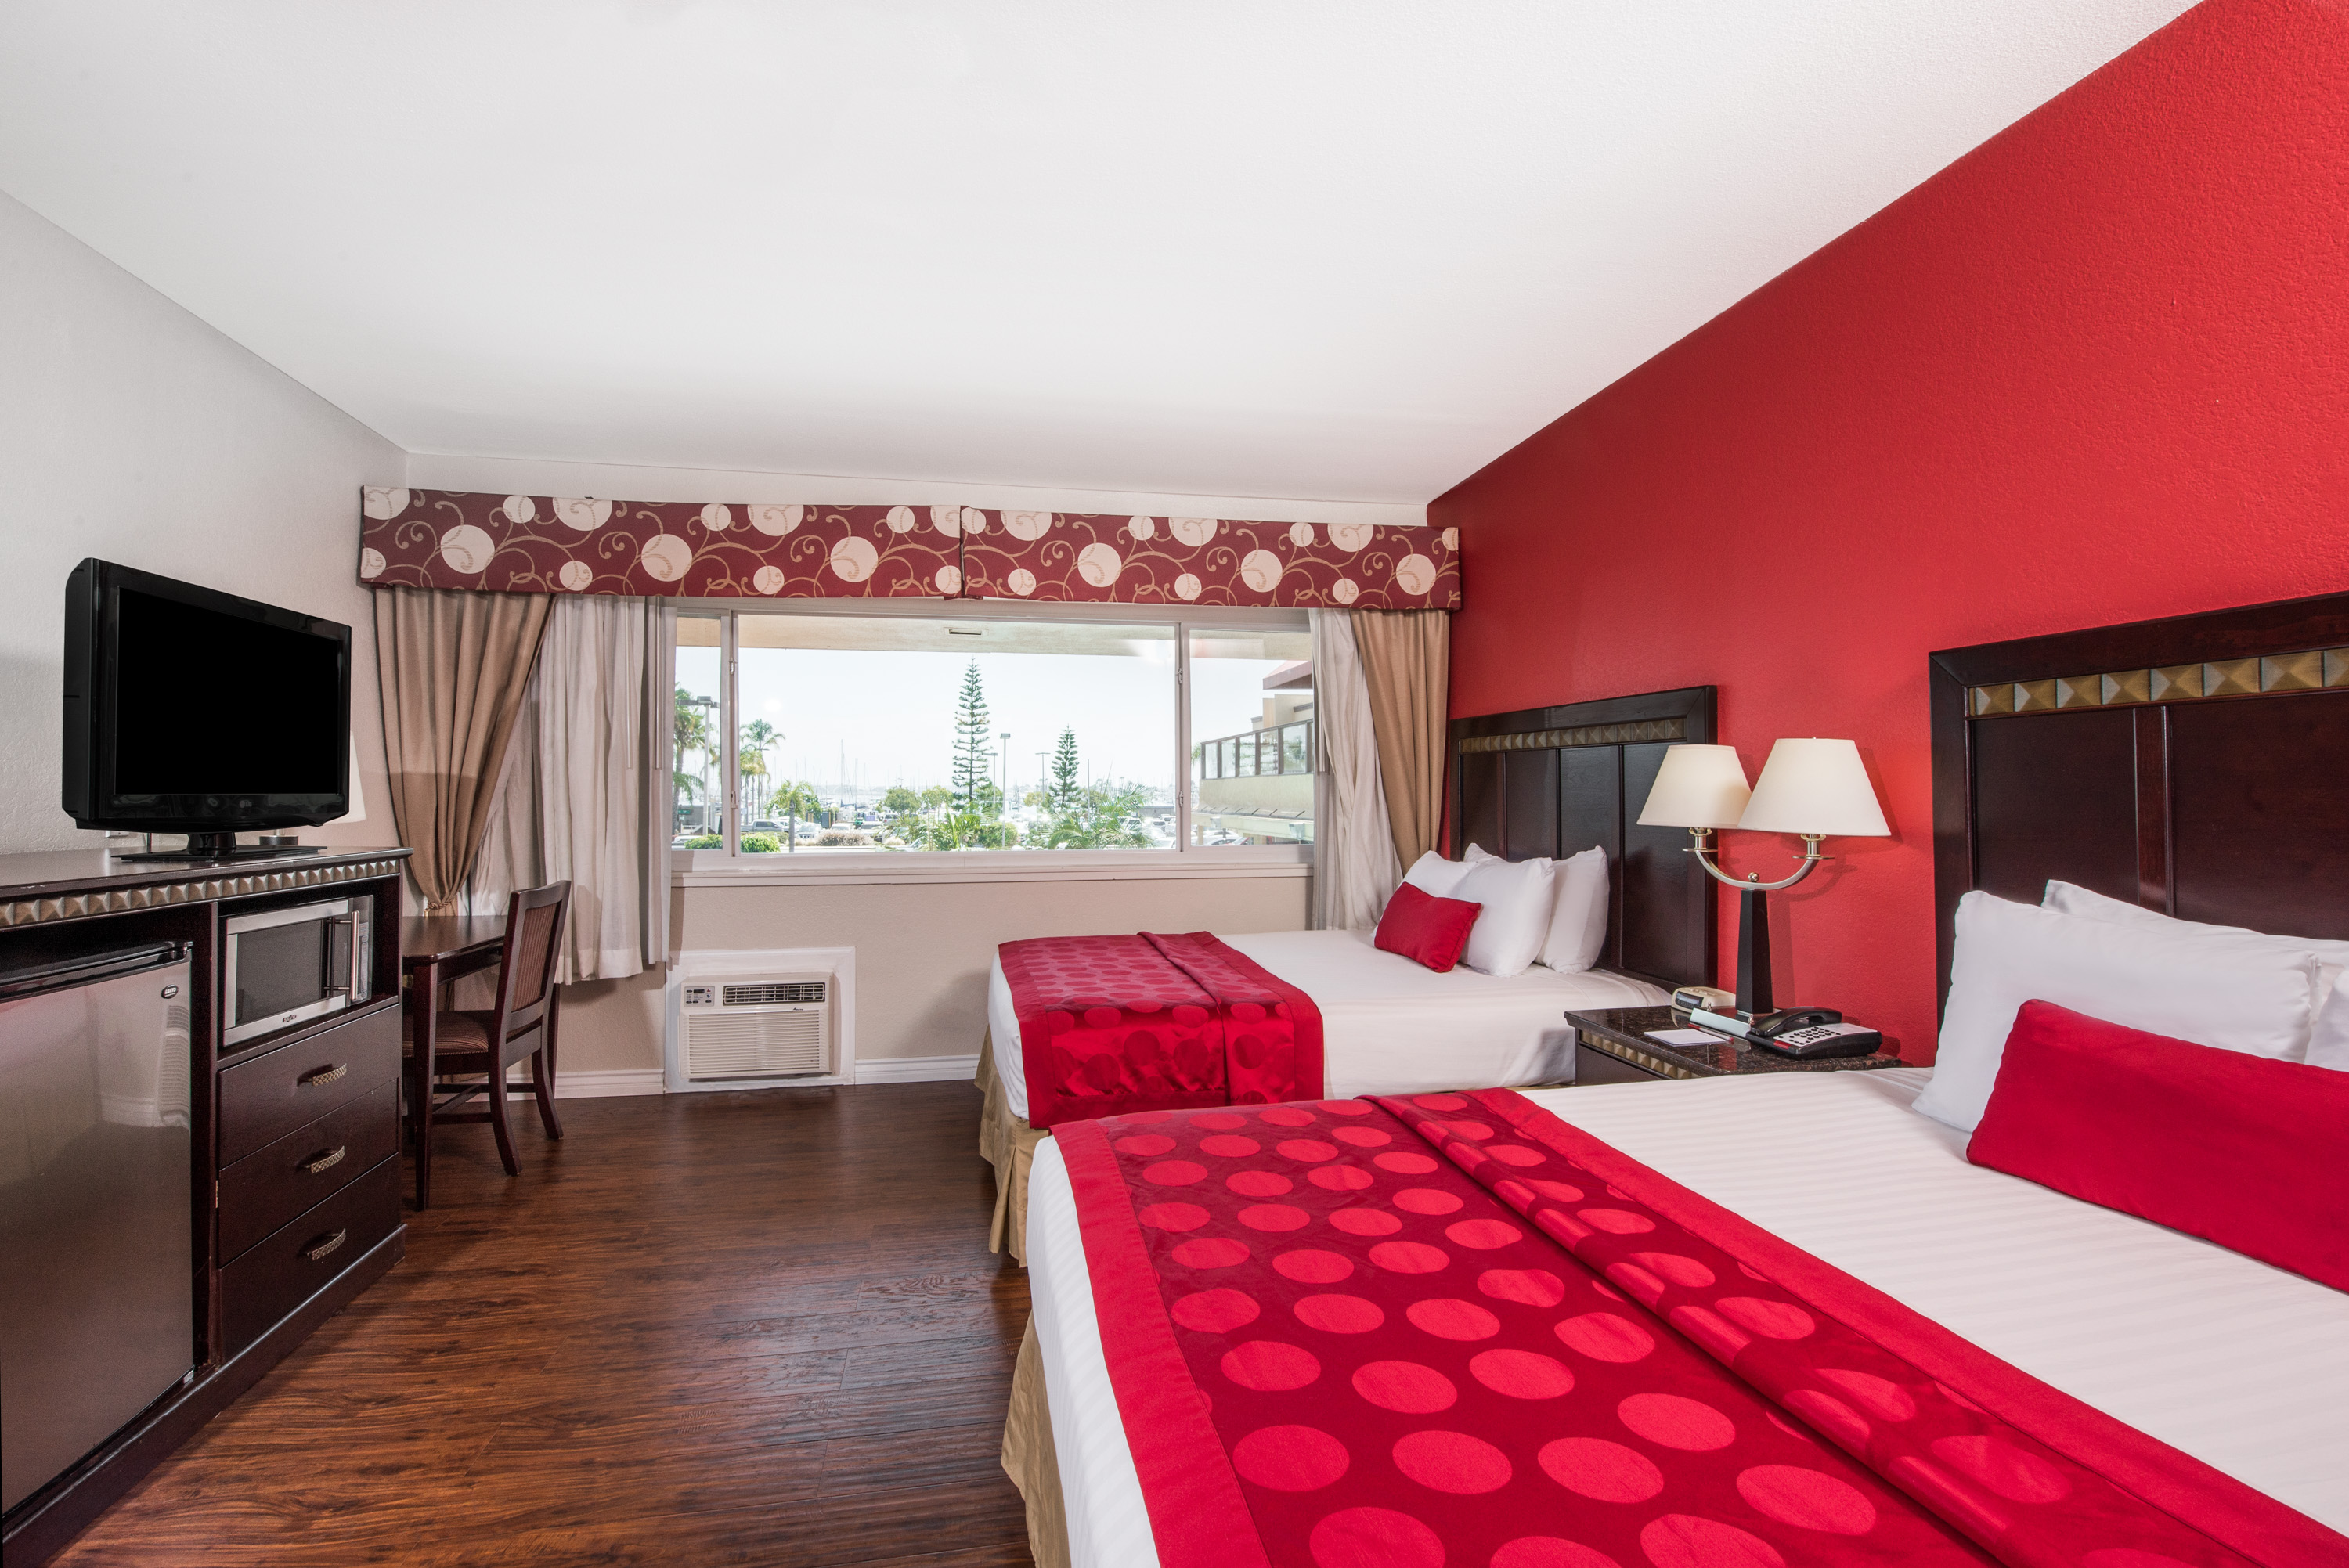 Ramada San Diego Airport - Family friendly San Diego accommodations with 2 beds